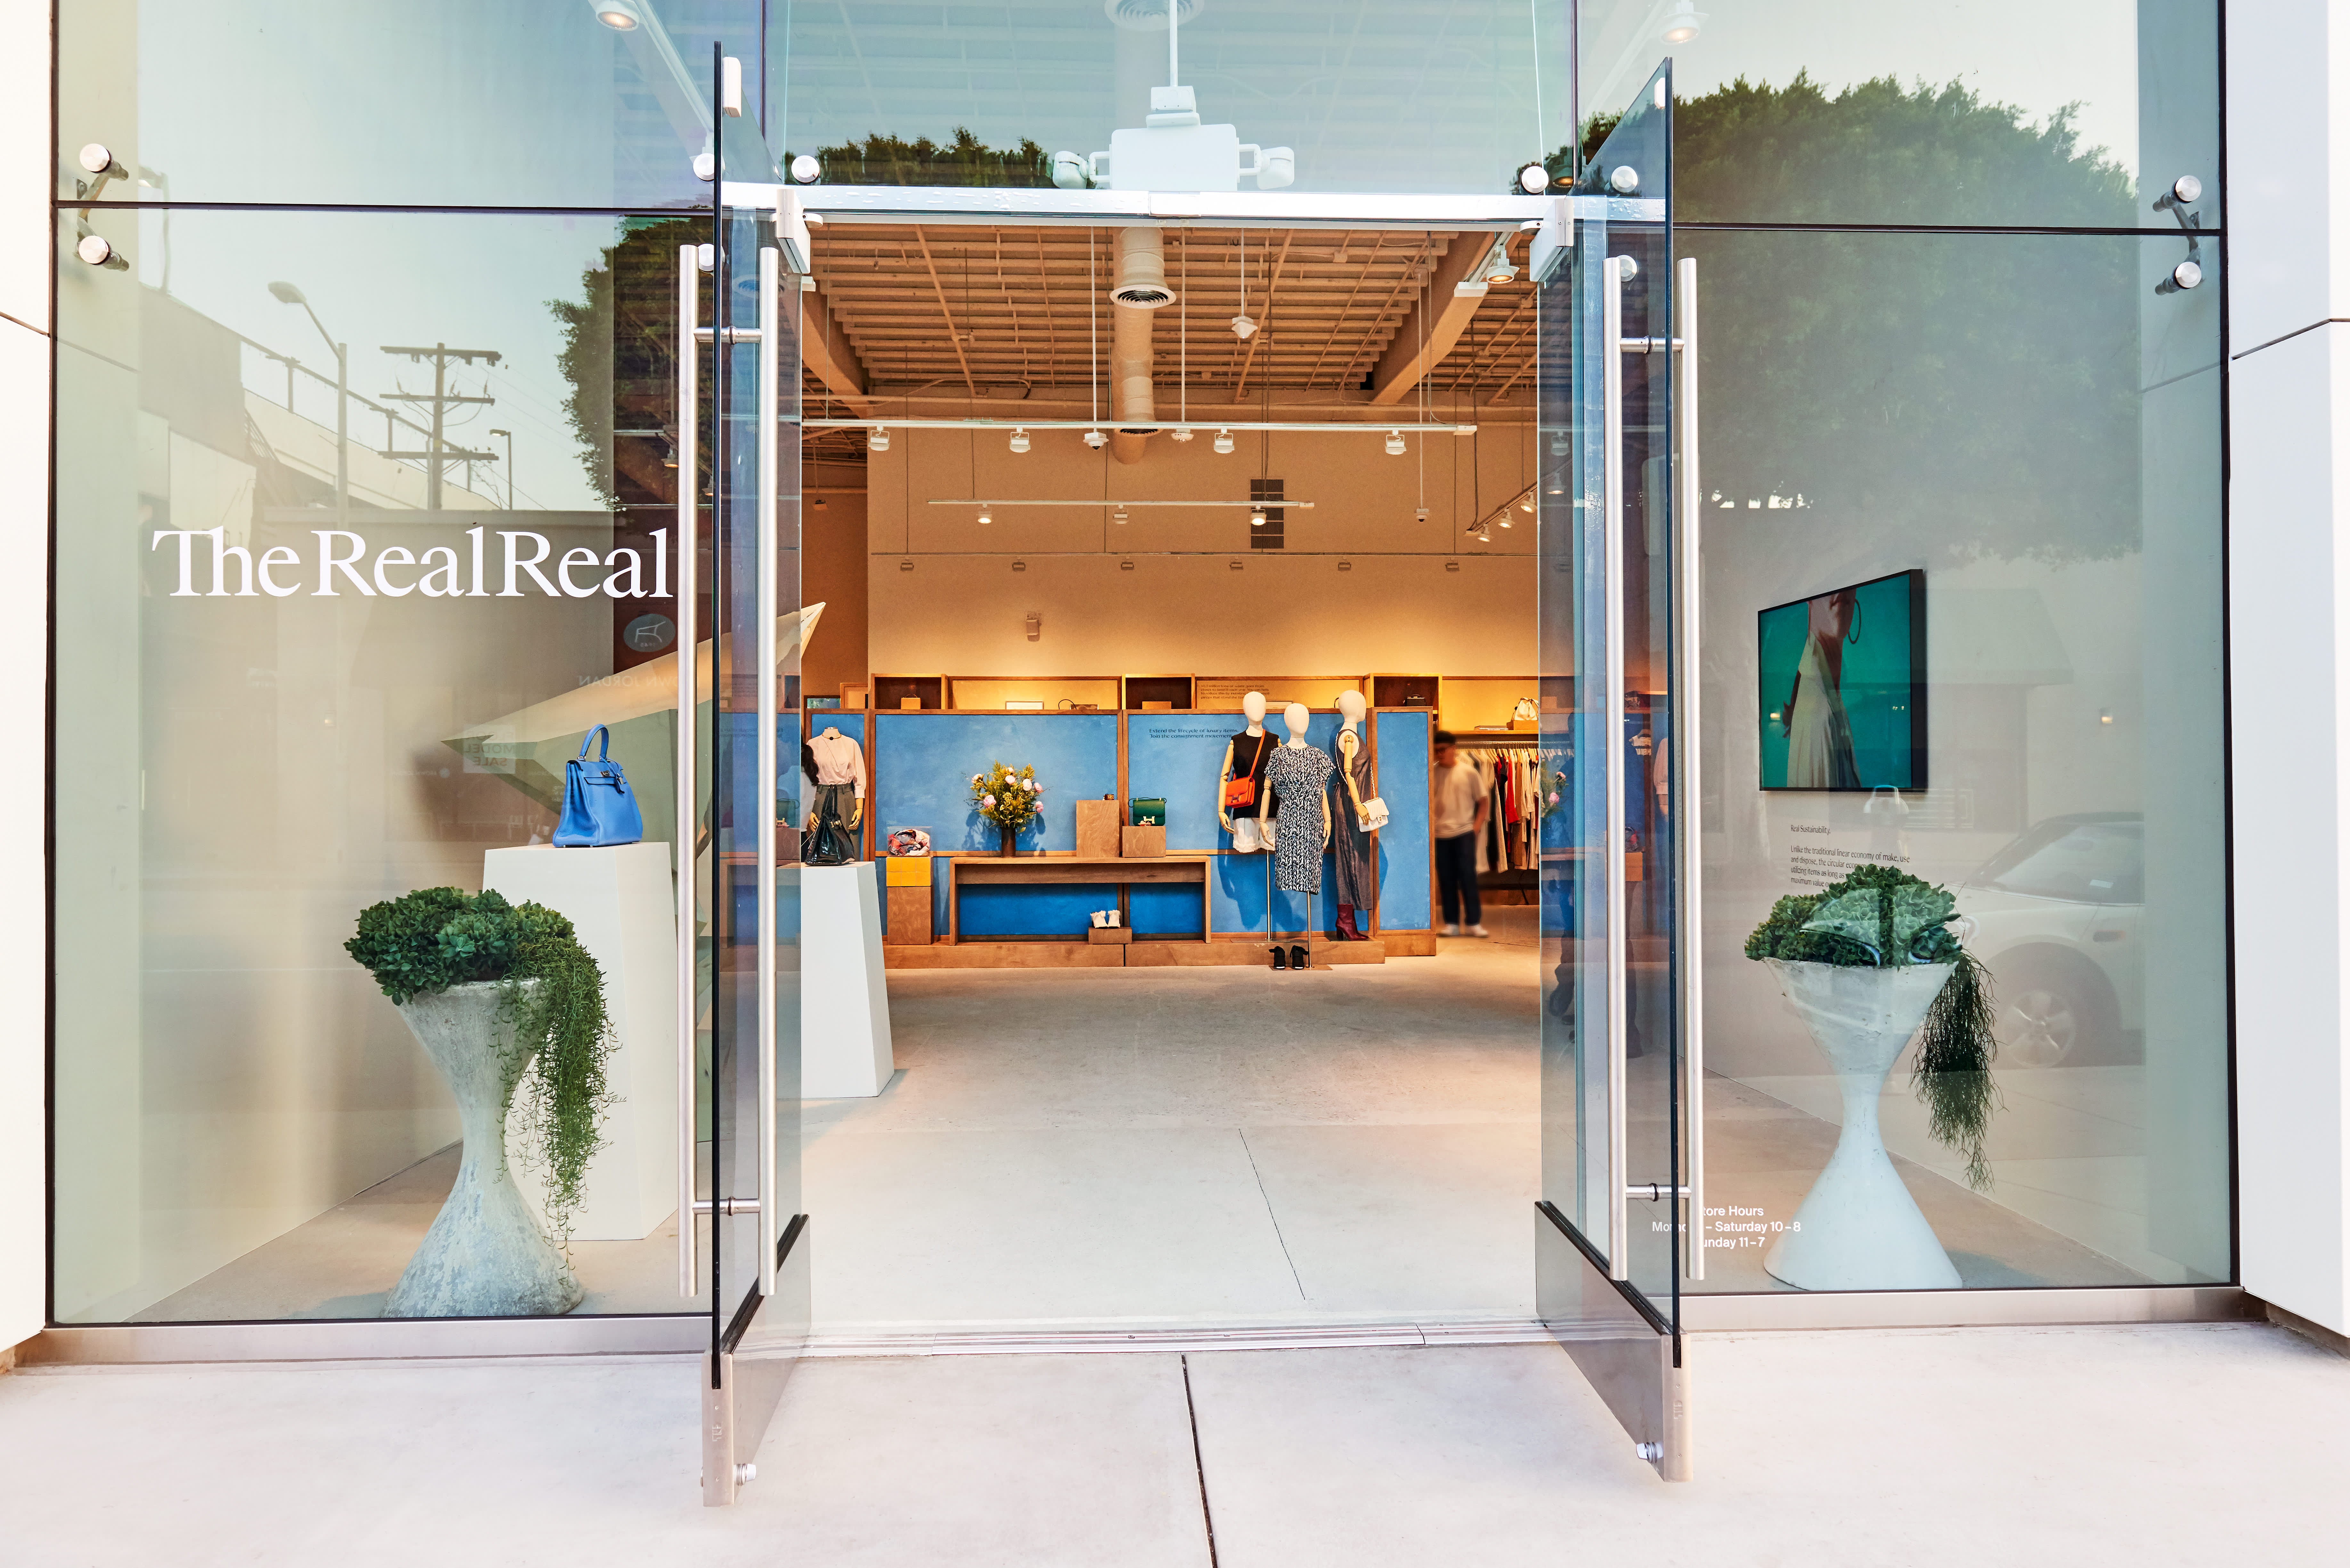 cab0769fb69 Online start-up The RealReal to open its second luxury consignment store